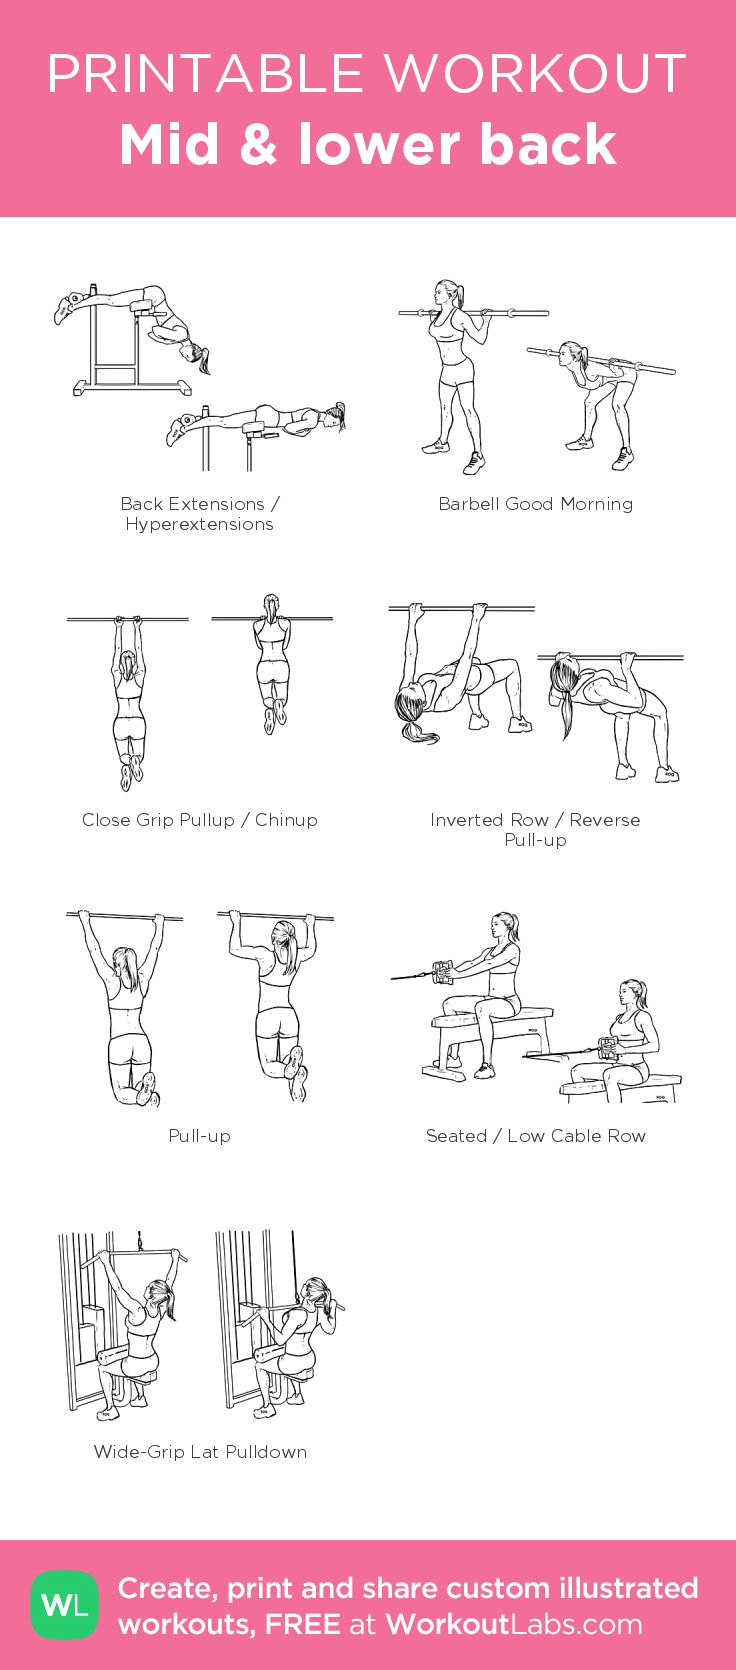 Mid & lower back: my visual workout created at WorkoutLabs.com • Click through to customize and download as a FREE PDF! #customworkout